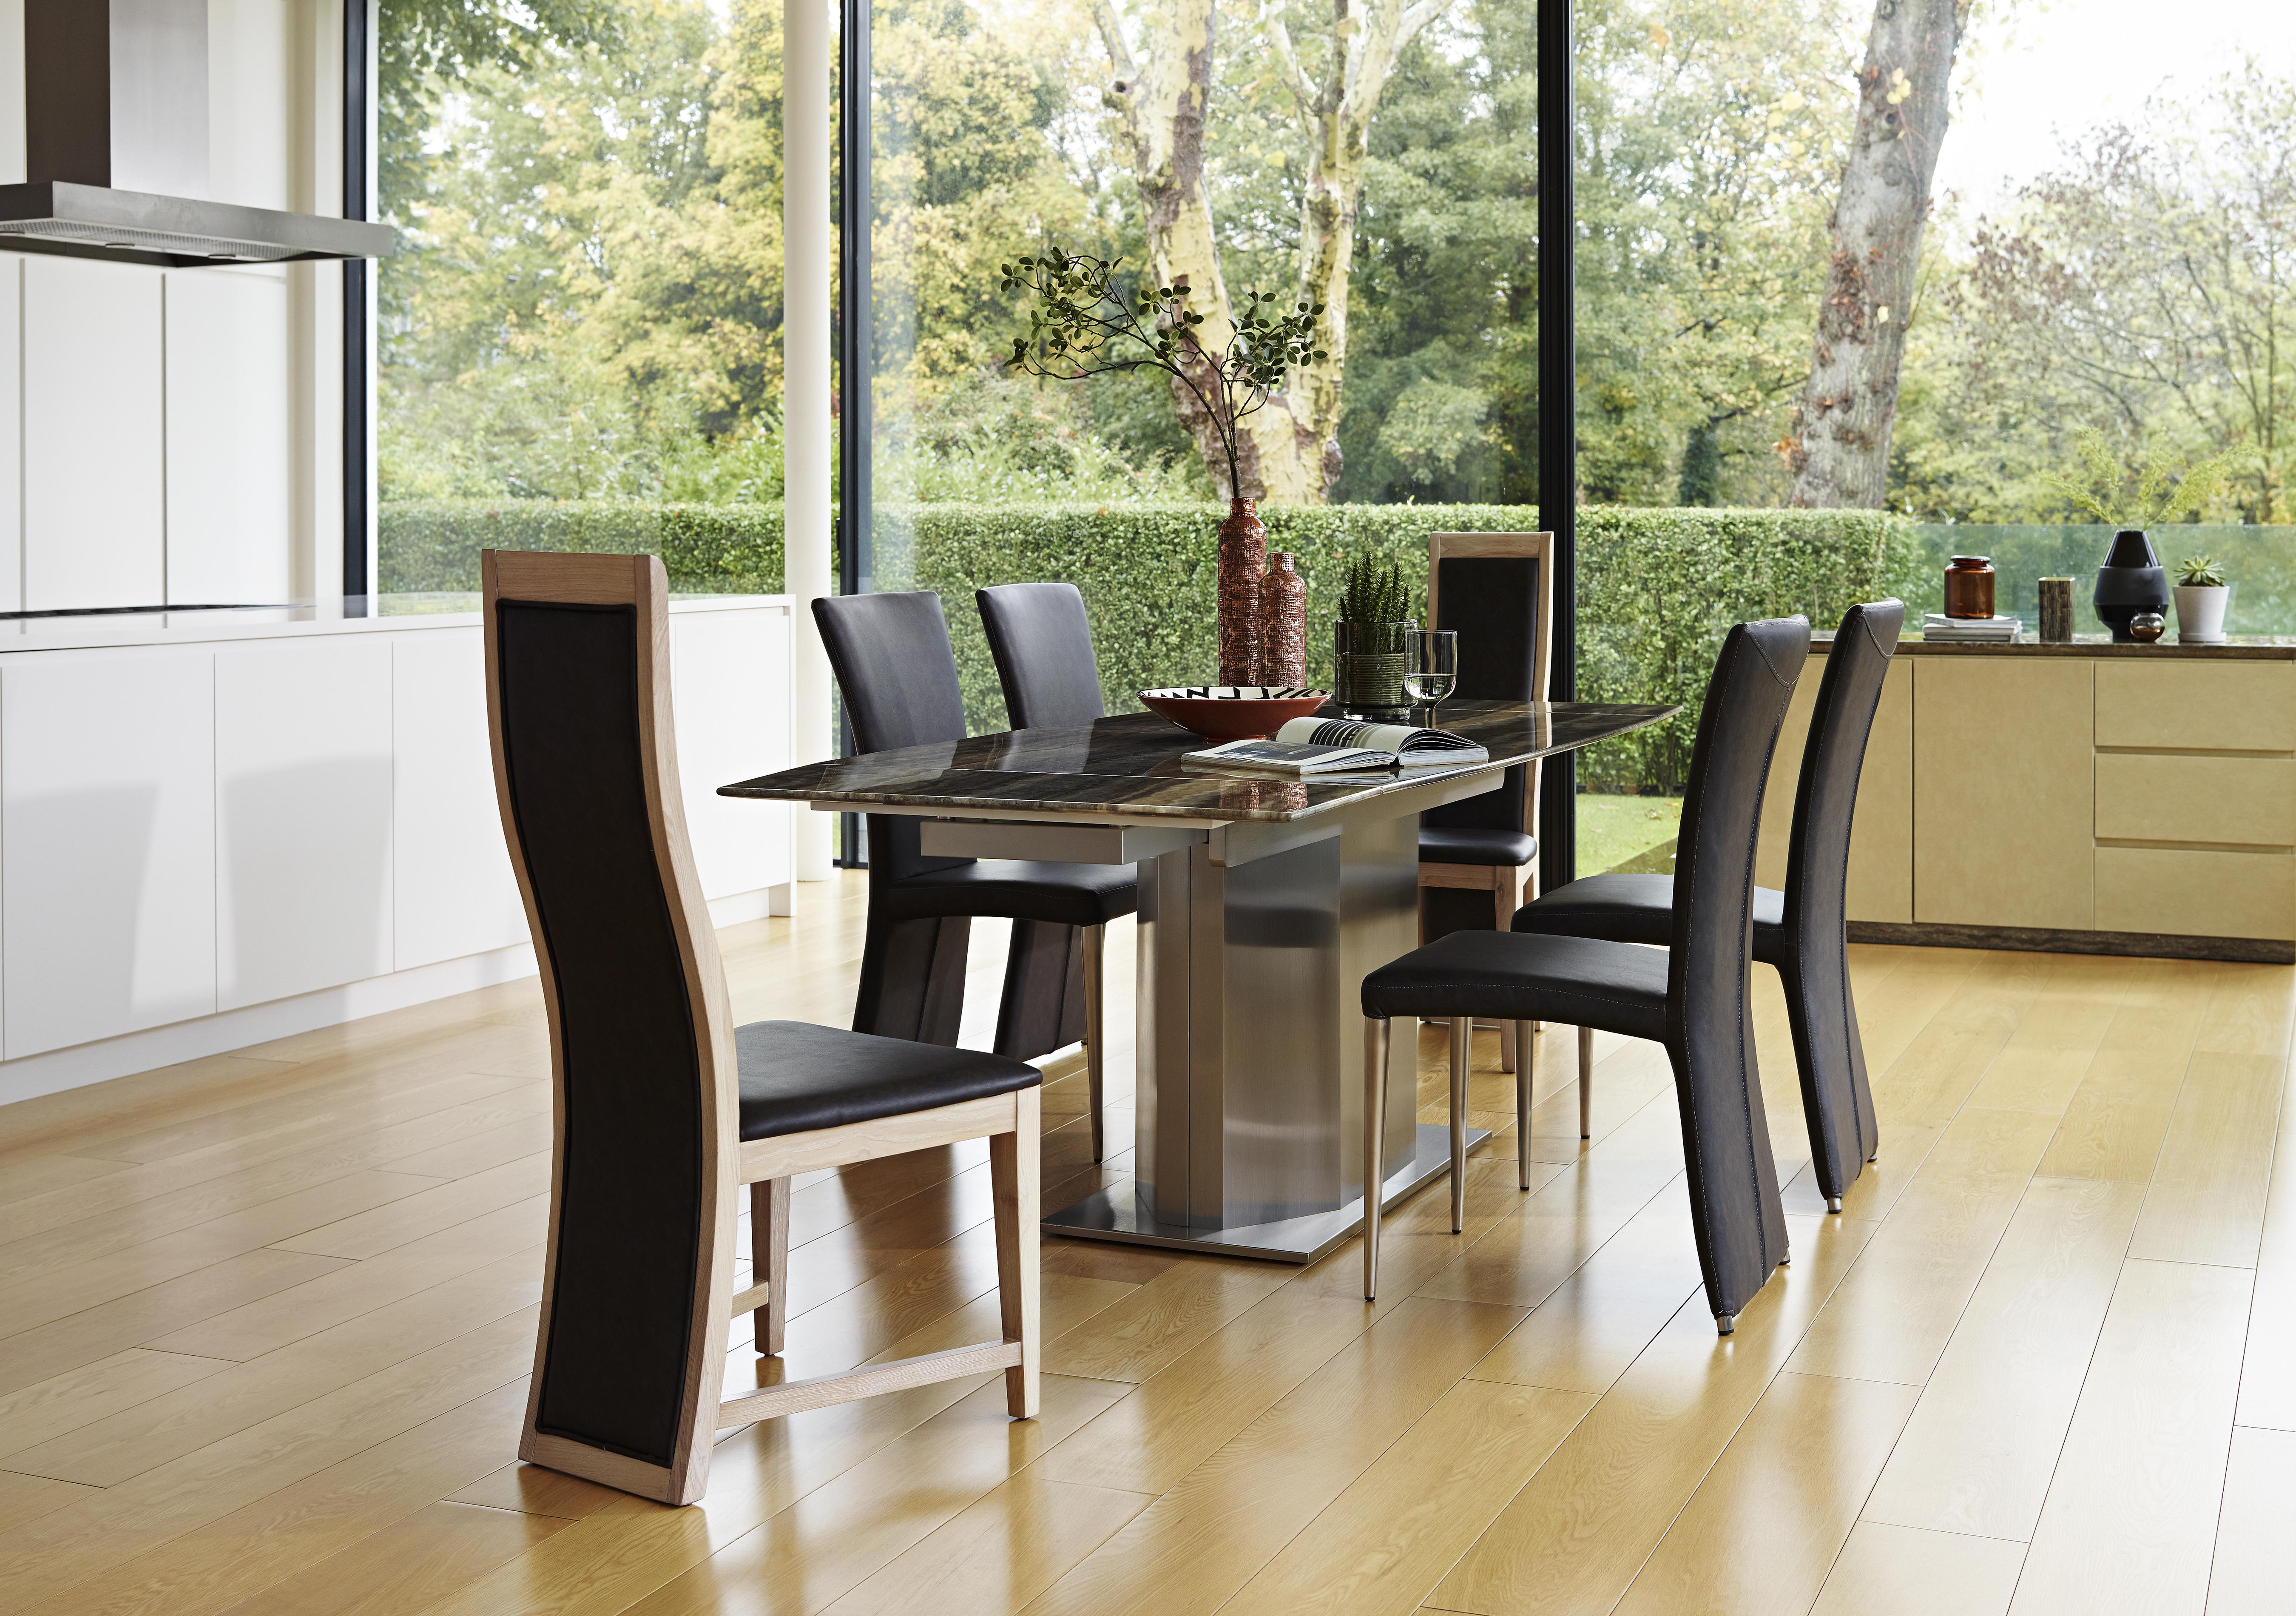 extendable dining table furniture village. long island extending dining table extendable furniture village n